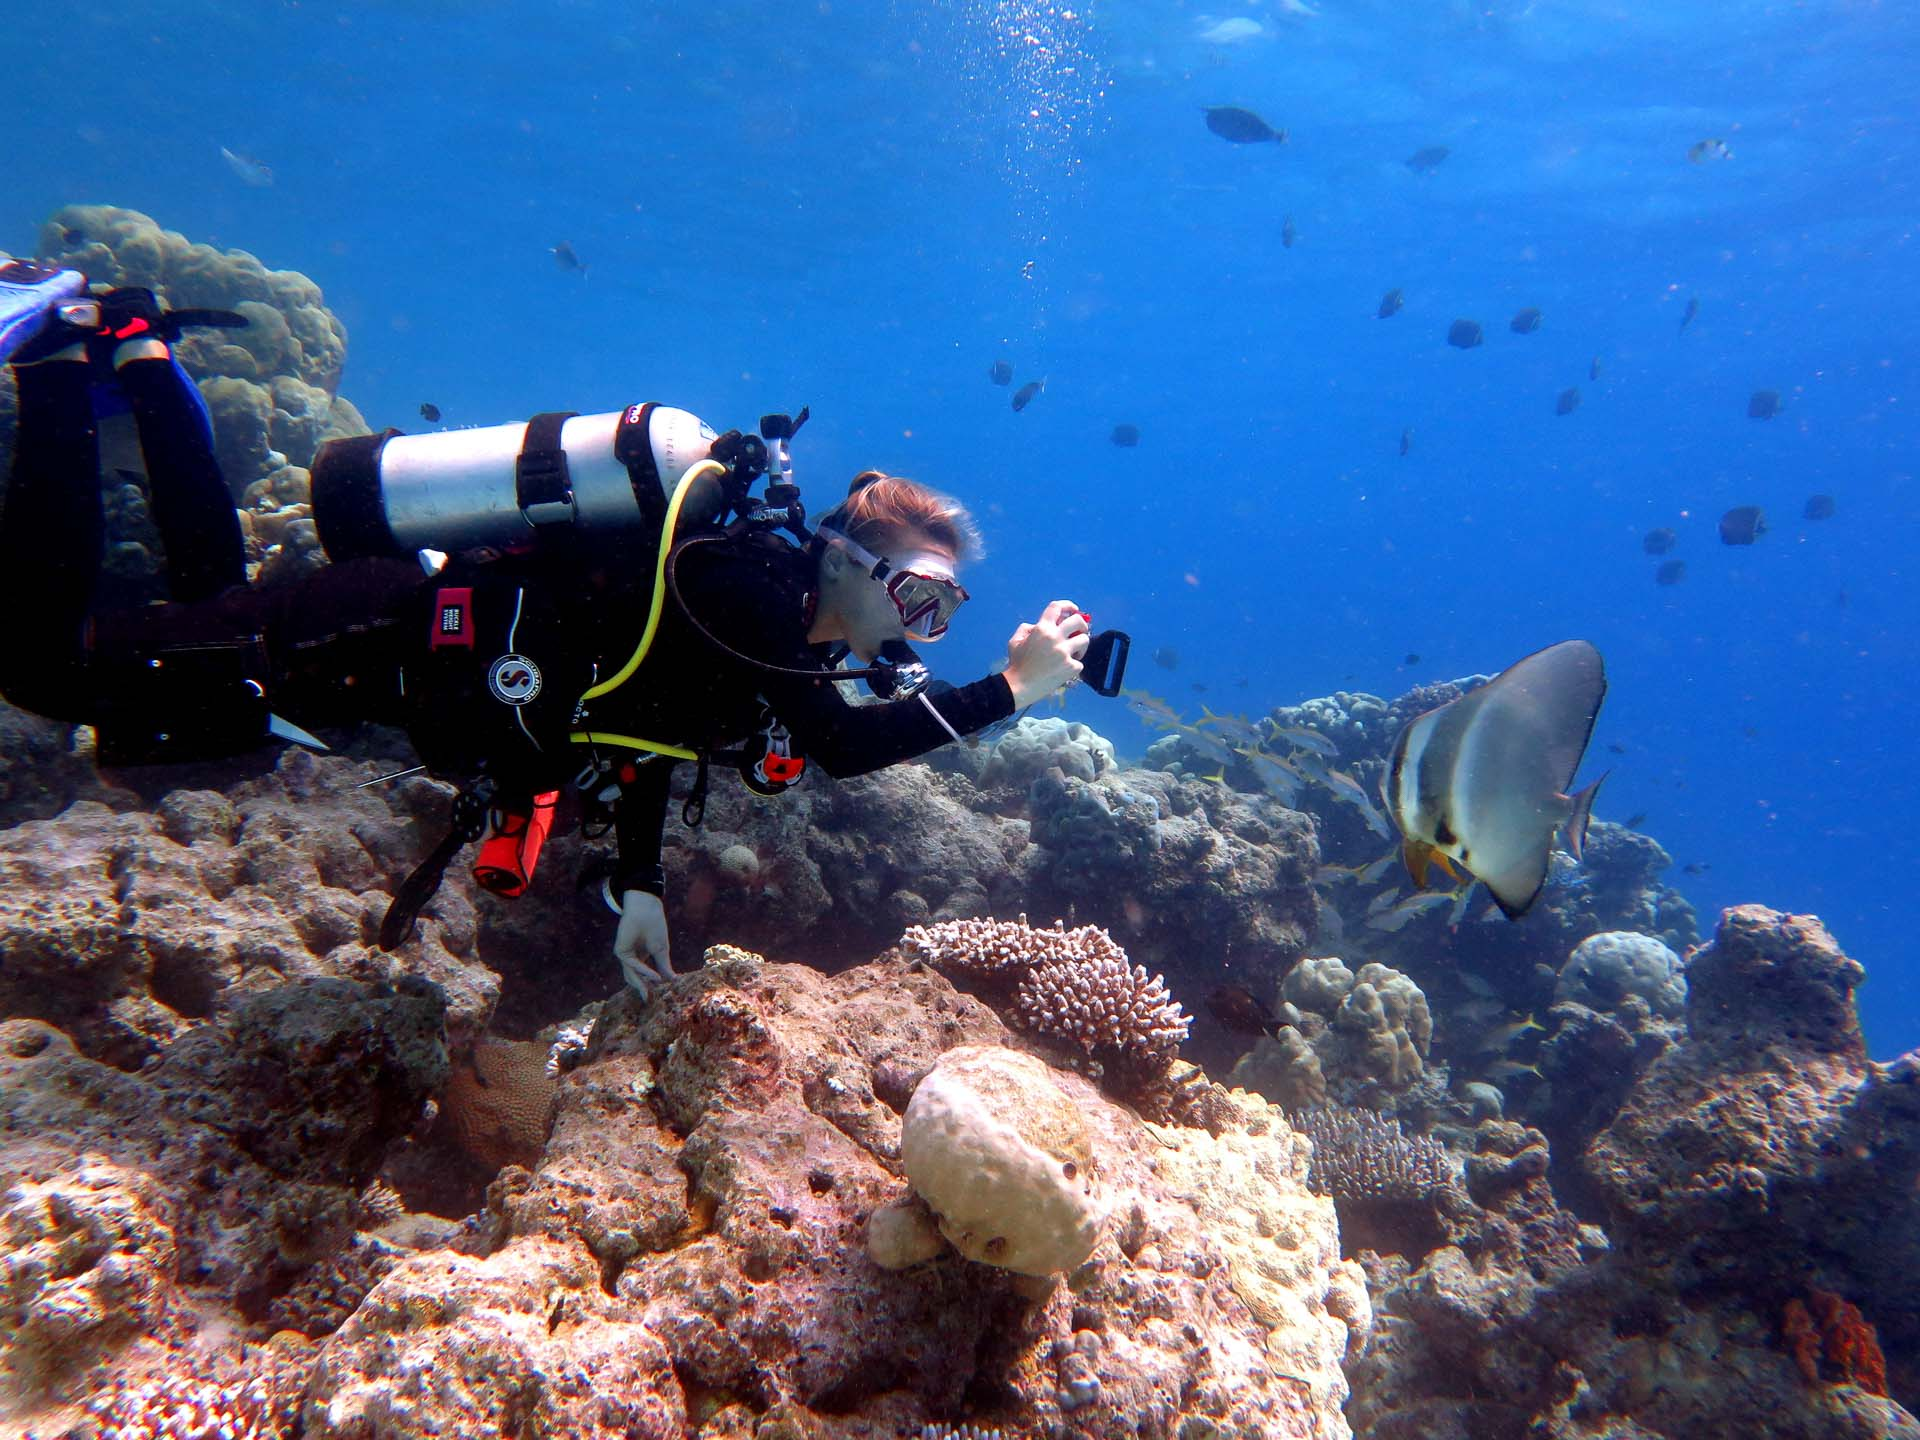 Seamarc Maldives Volunteering - wonderful natural coral reef